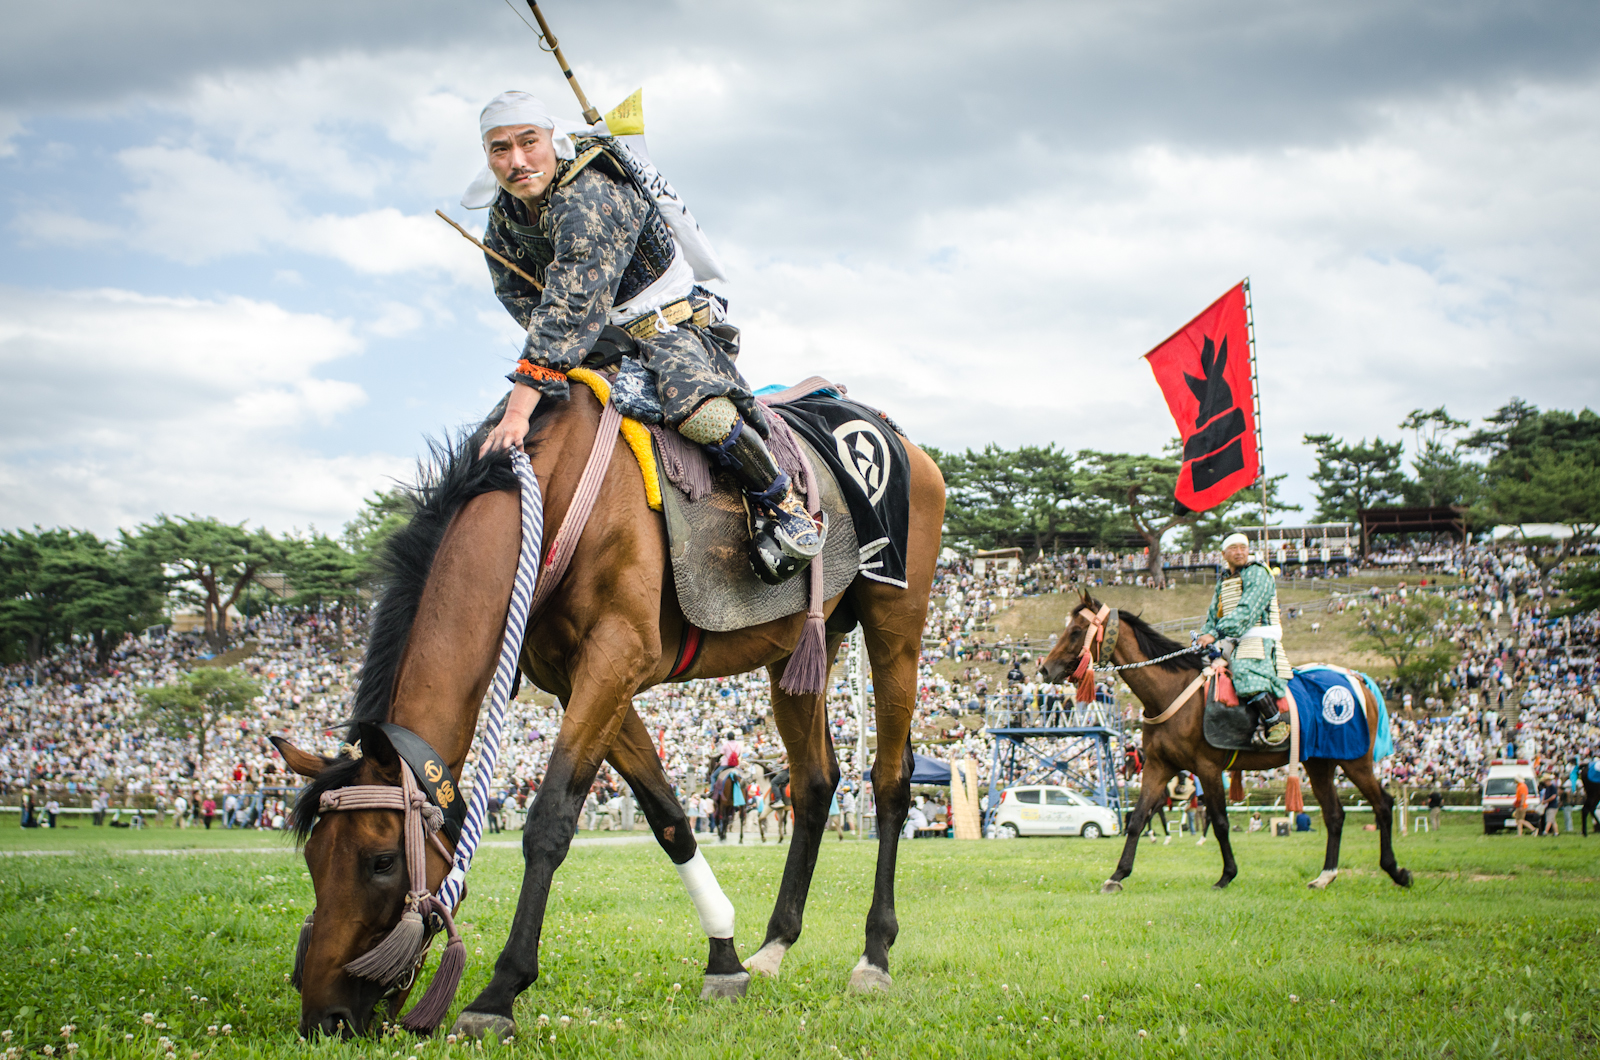 Samurai warriors wait on their horses before competing in traditional games